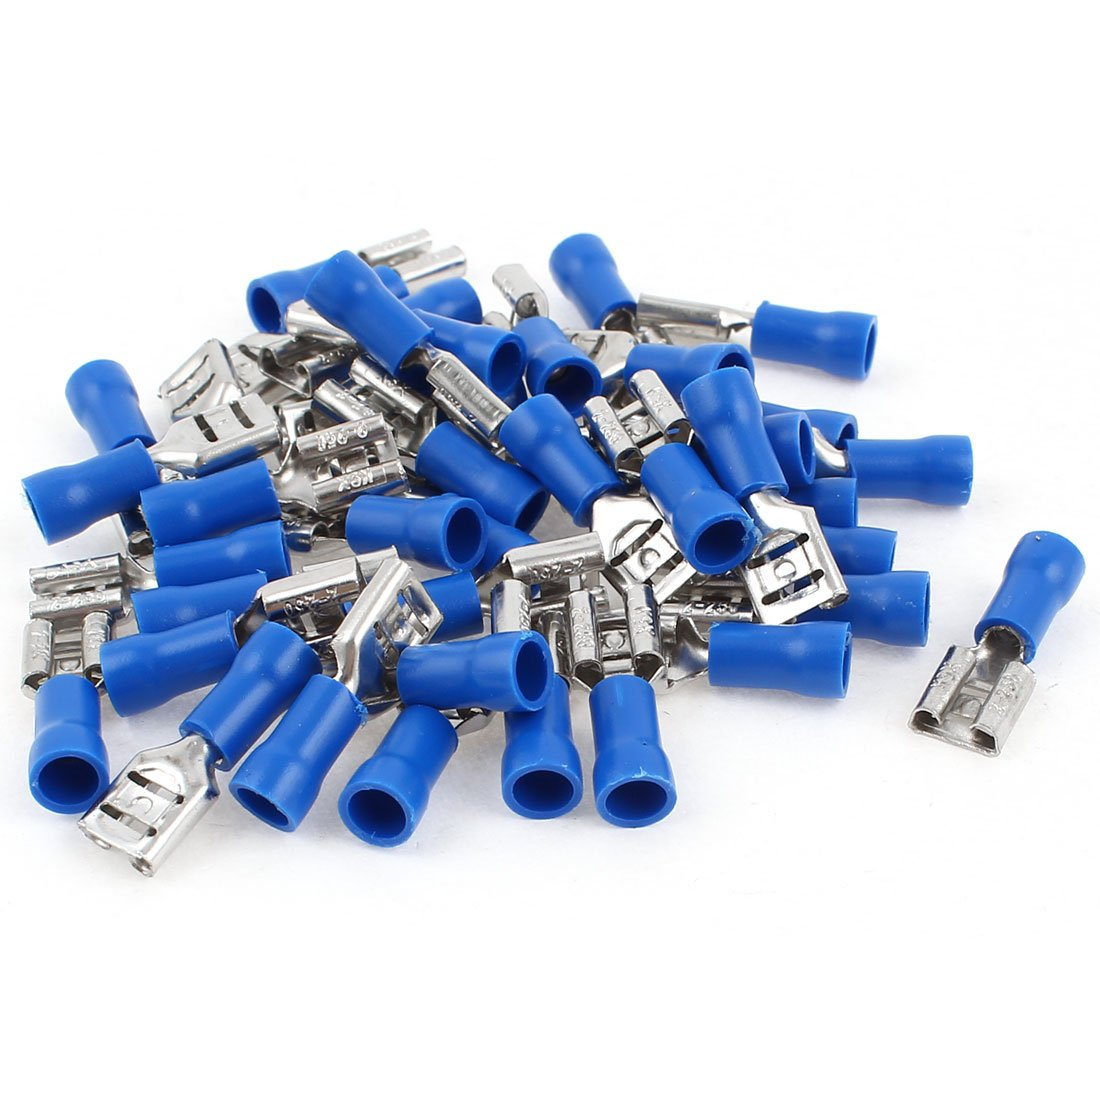 Uxcell FDD 2-250 Pre Insulated AWG16-14 Cable Spade Crimp Terminals, 40 Pcs